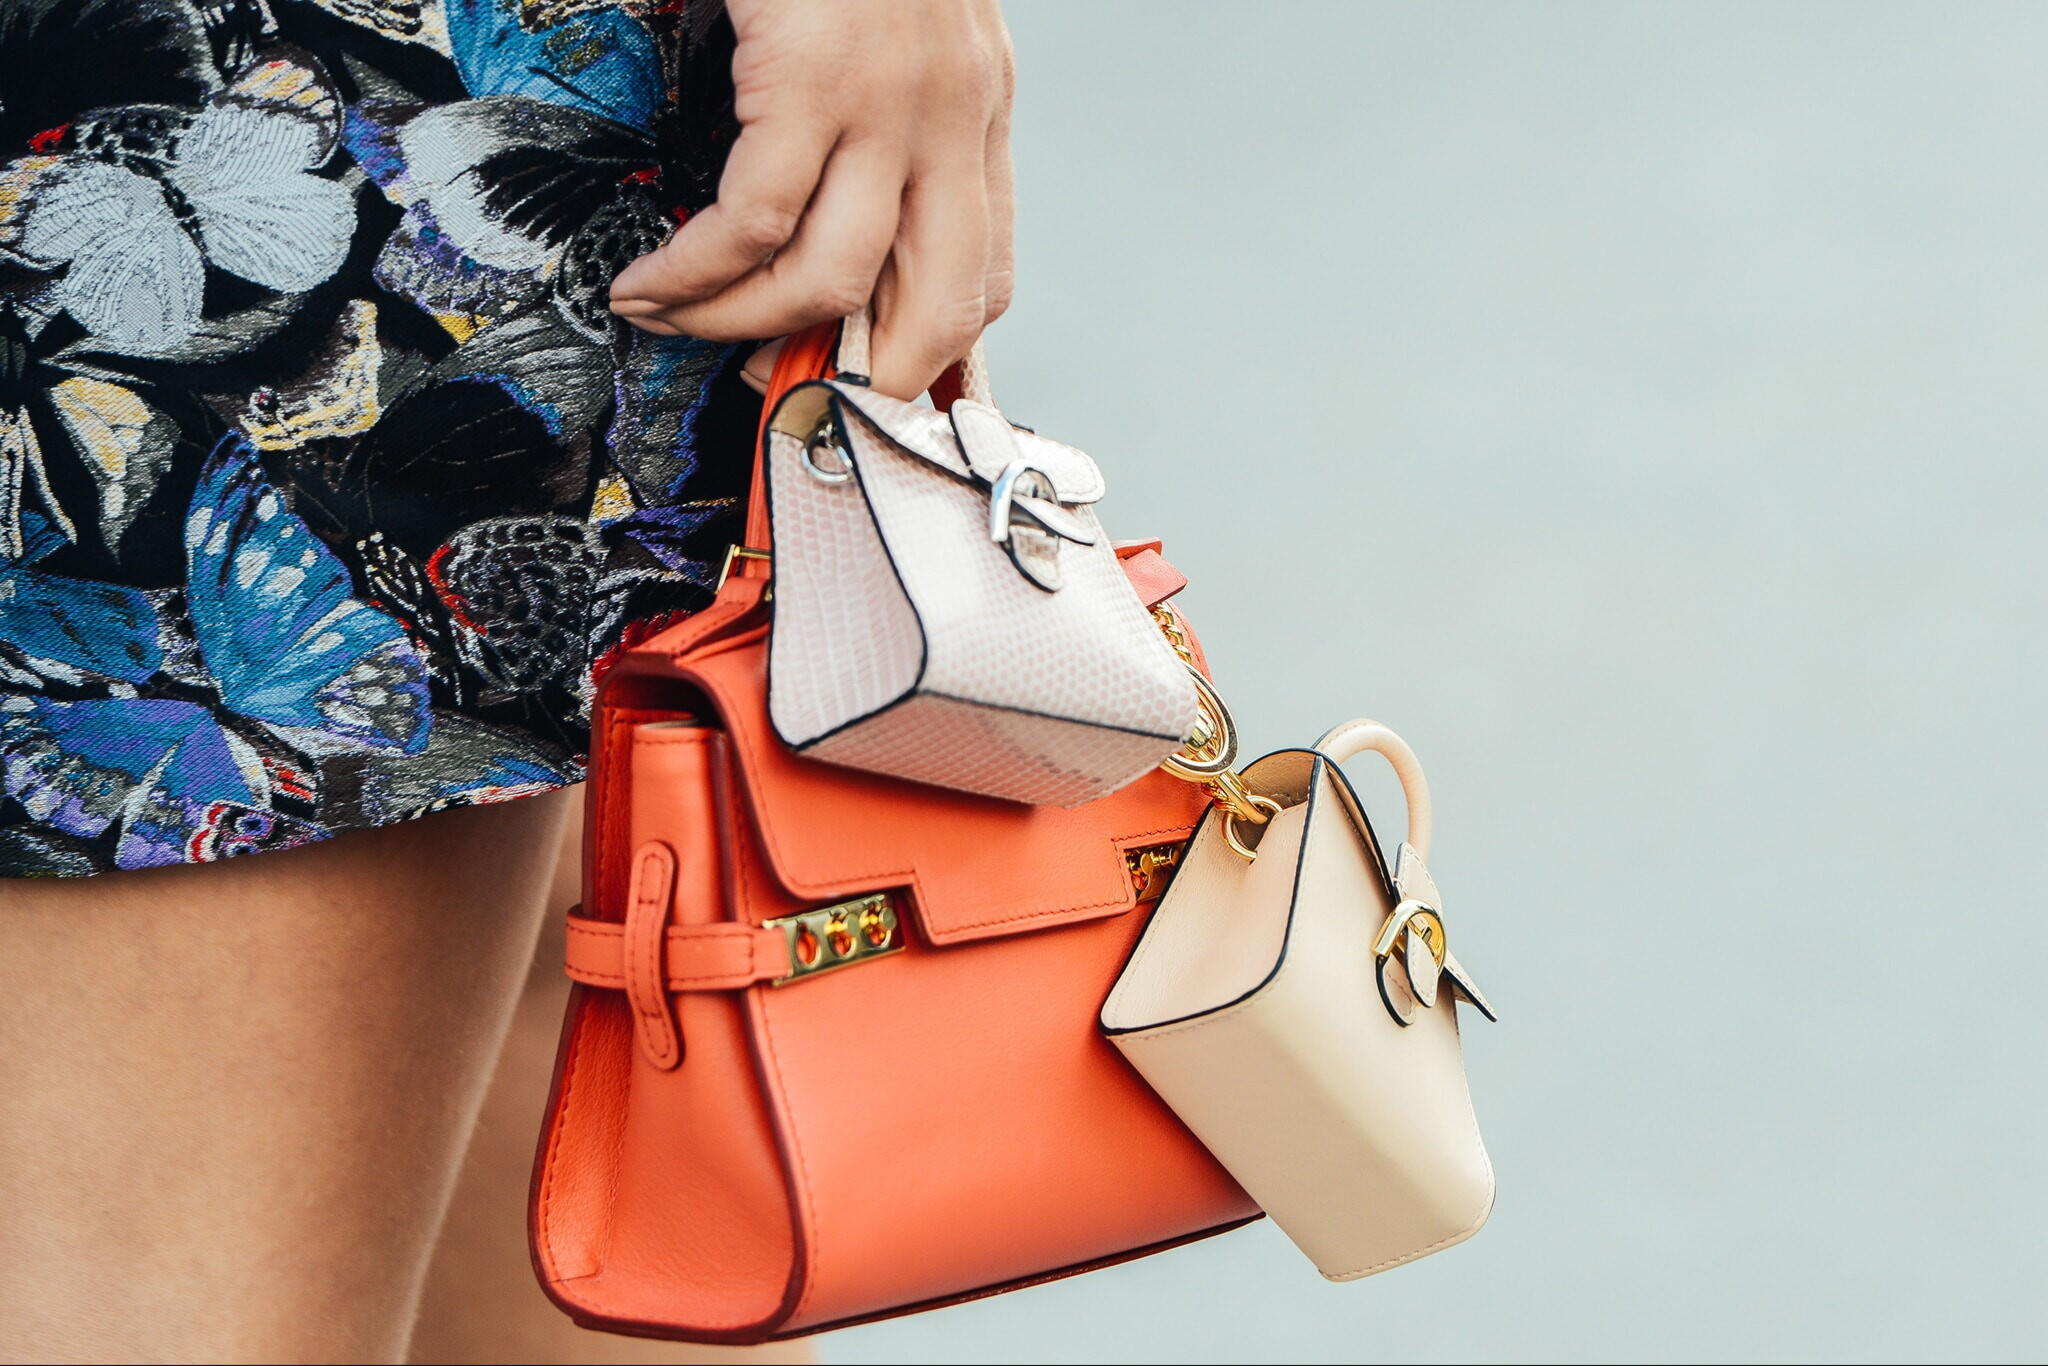 13 Designers That Create Beautiful Handbags for Under £700